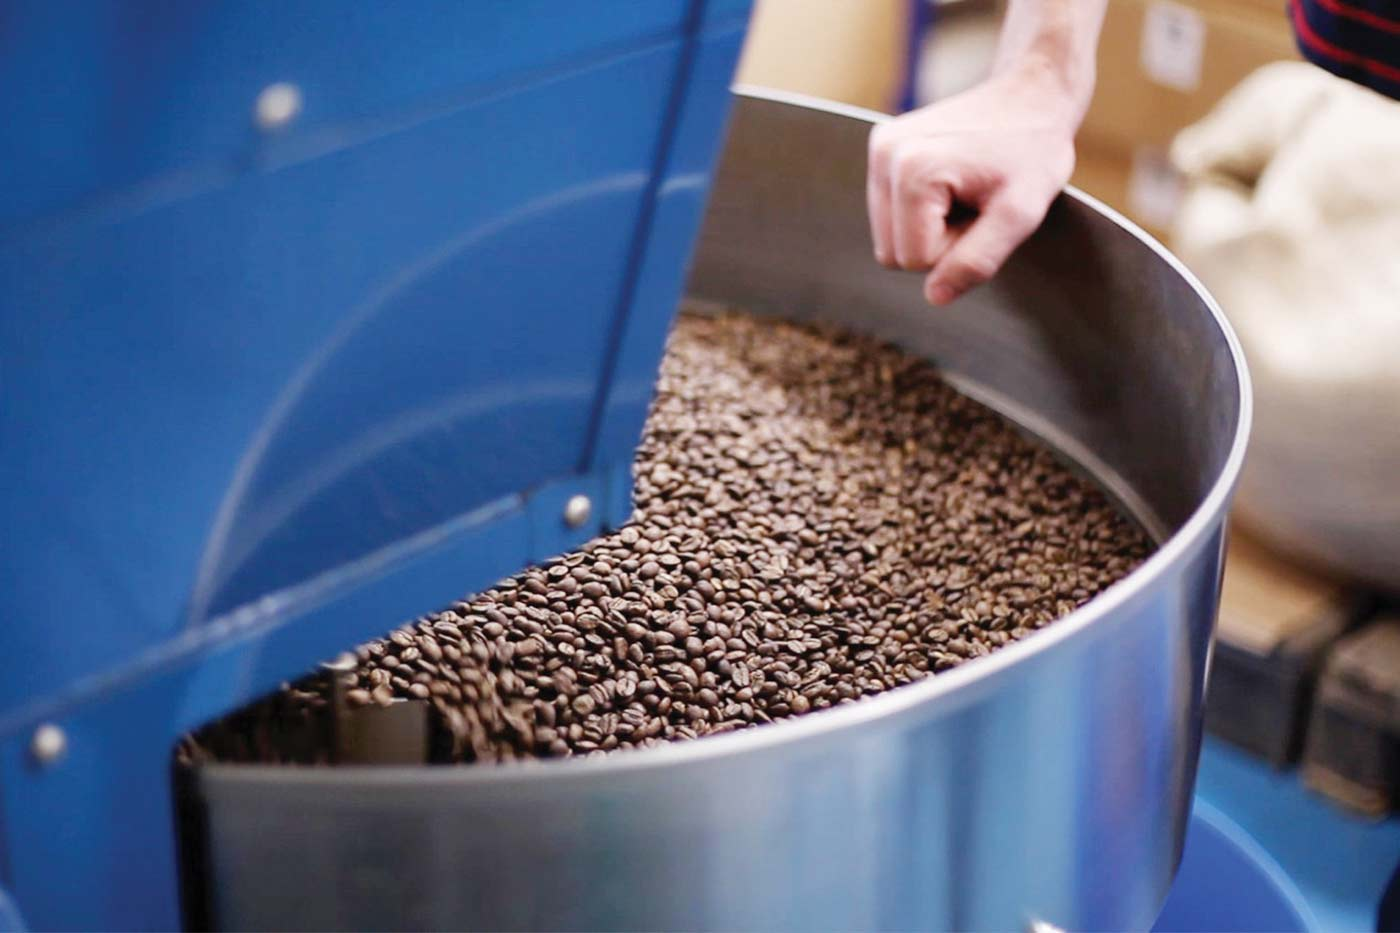 Beans fresh from roasting at Colonna Coffee